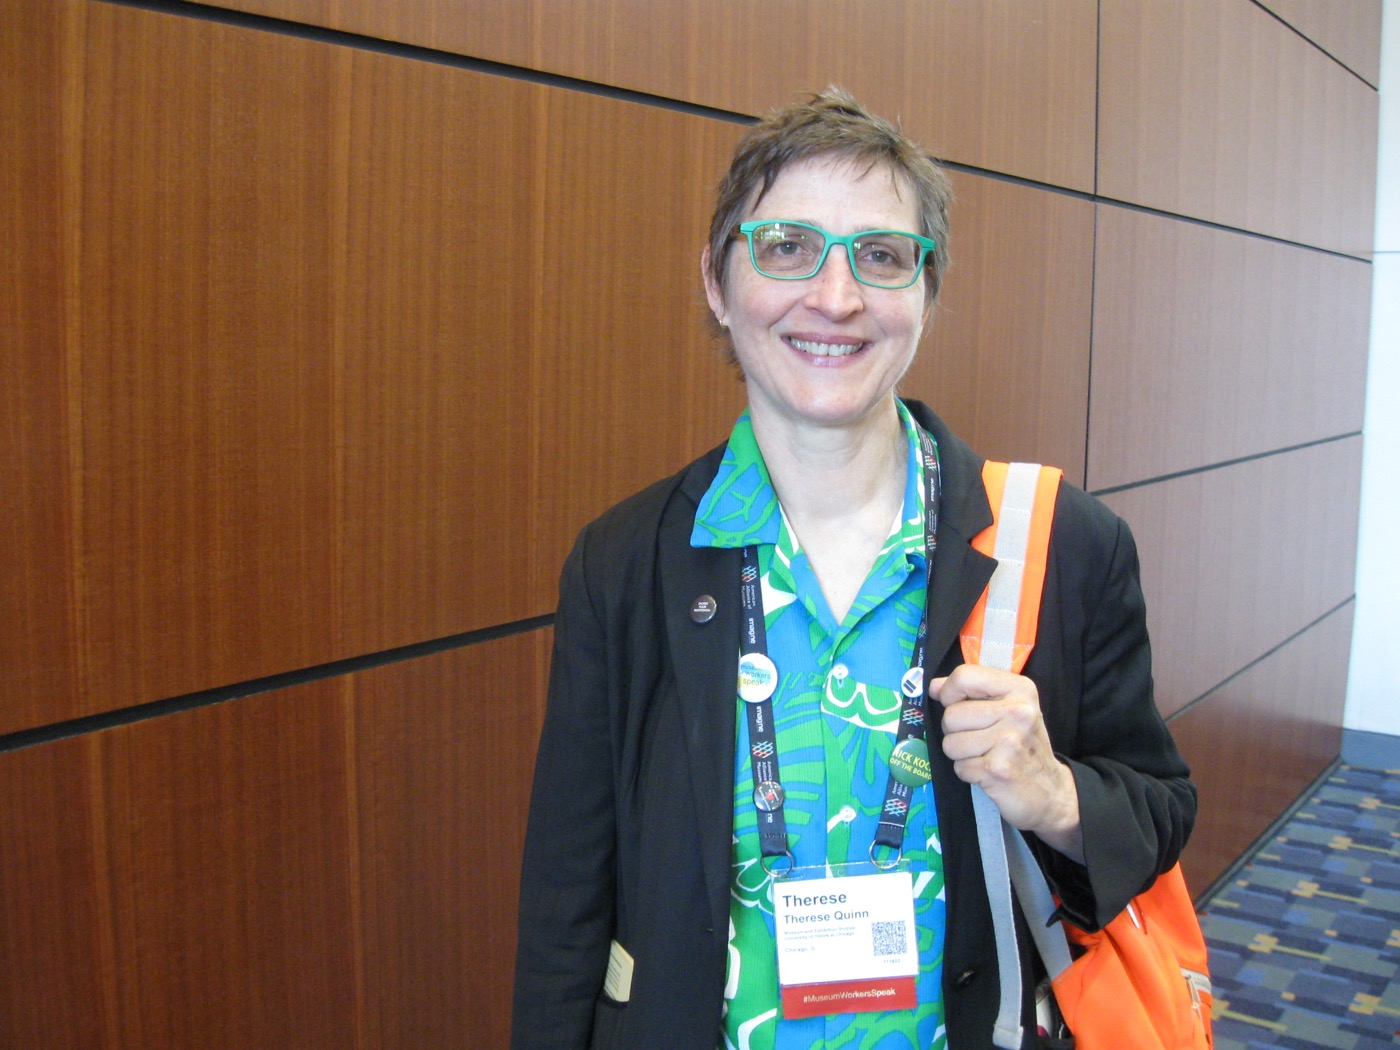 Therese Quinn, associate professor of art history and director of the Museum and Exhibition Studies program At the University of Illinois